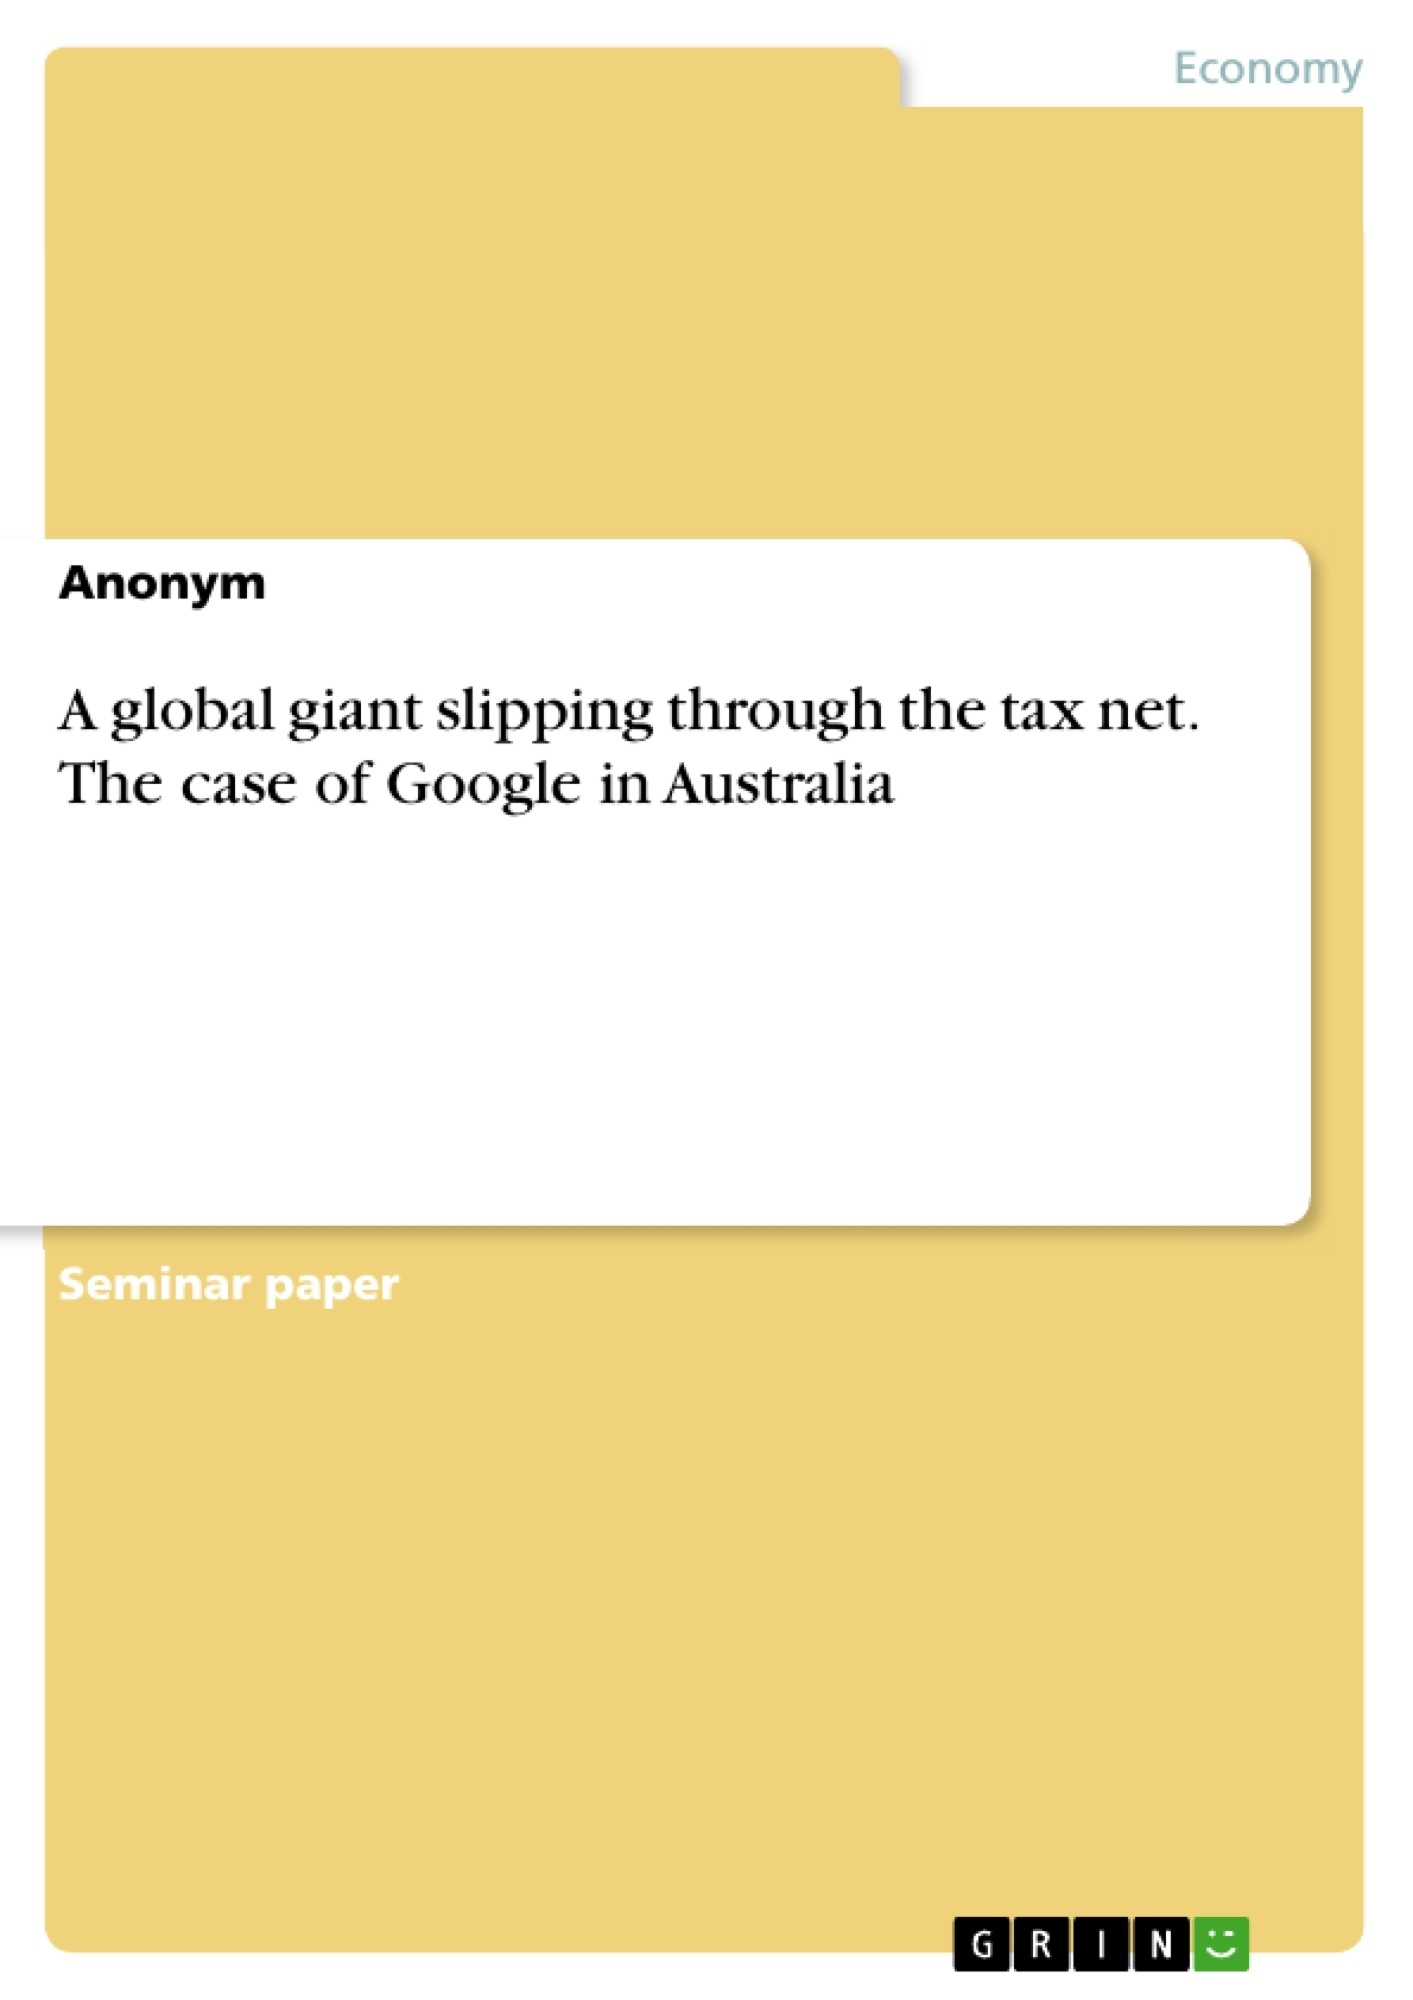 Title: A global giant slipping through the tax net. The case of Google in Australia